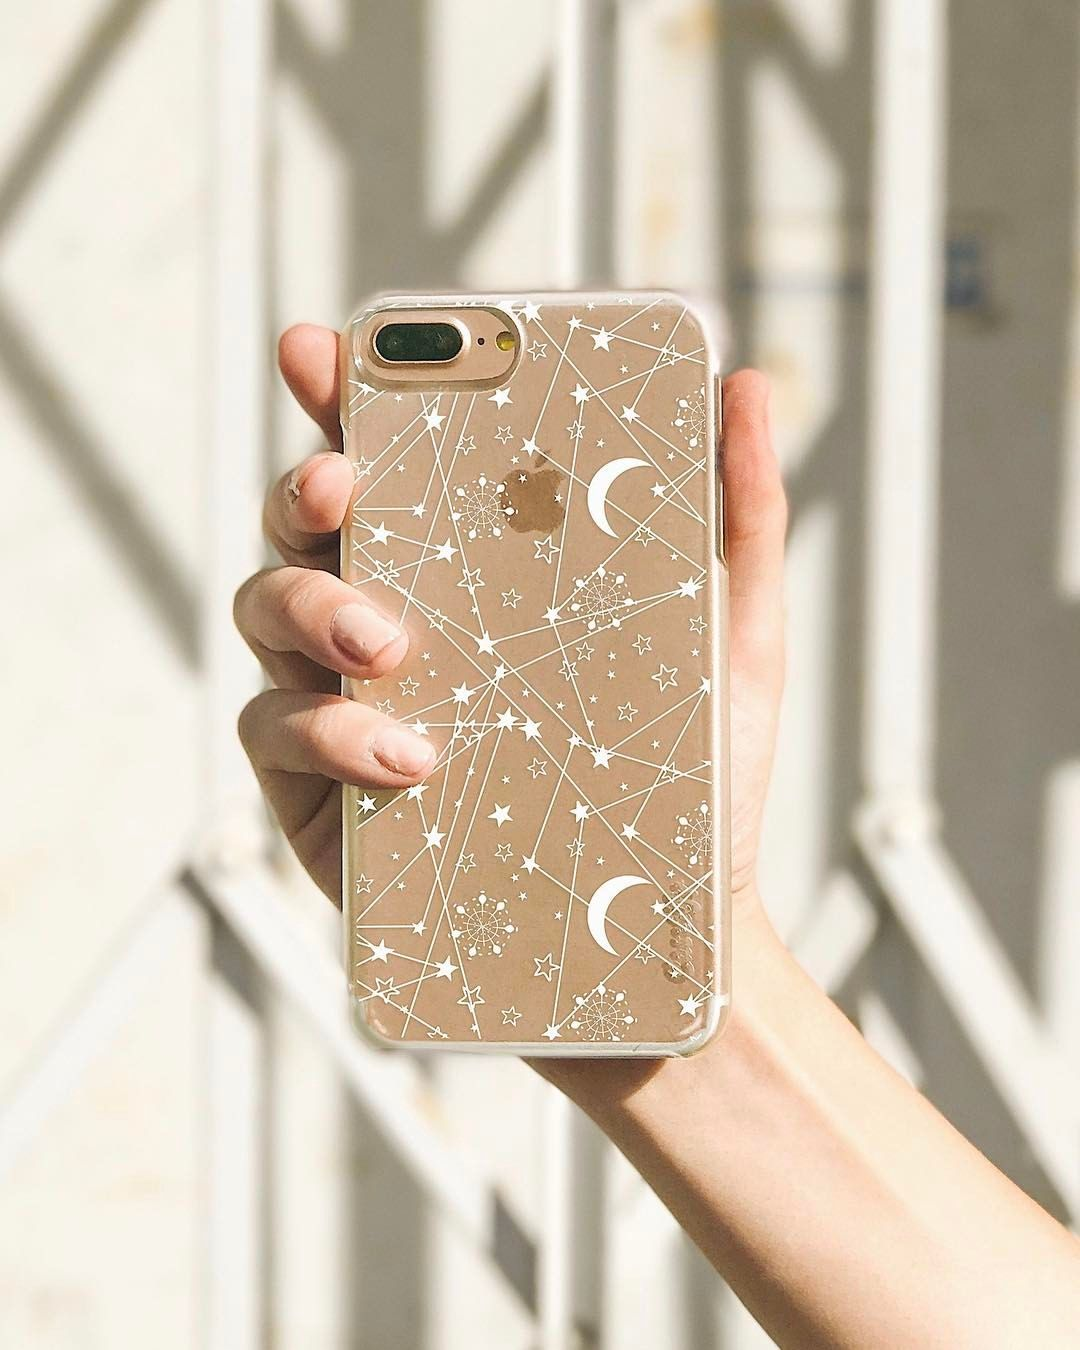 Pin by Simran on Phone Cases  a006c1d15c4